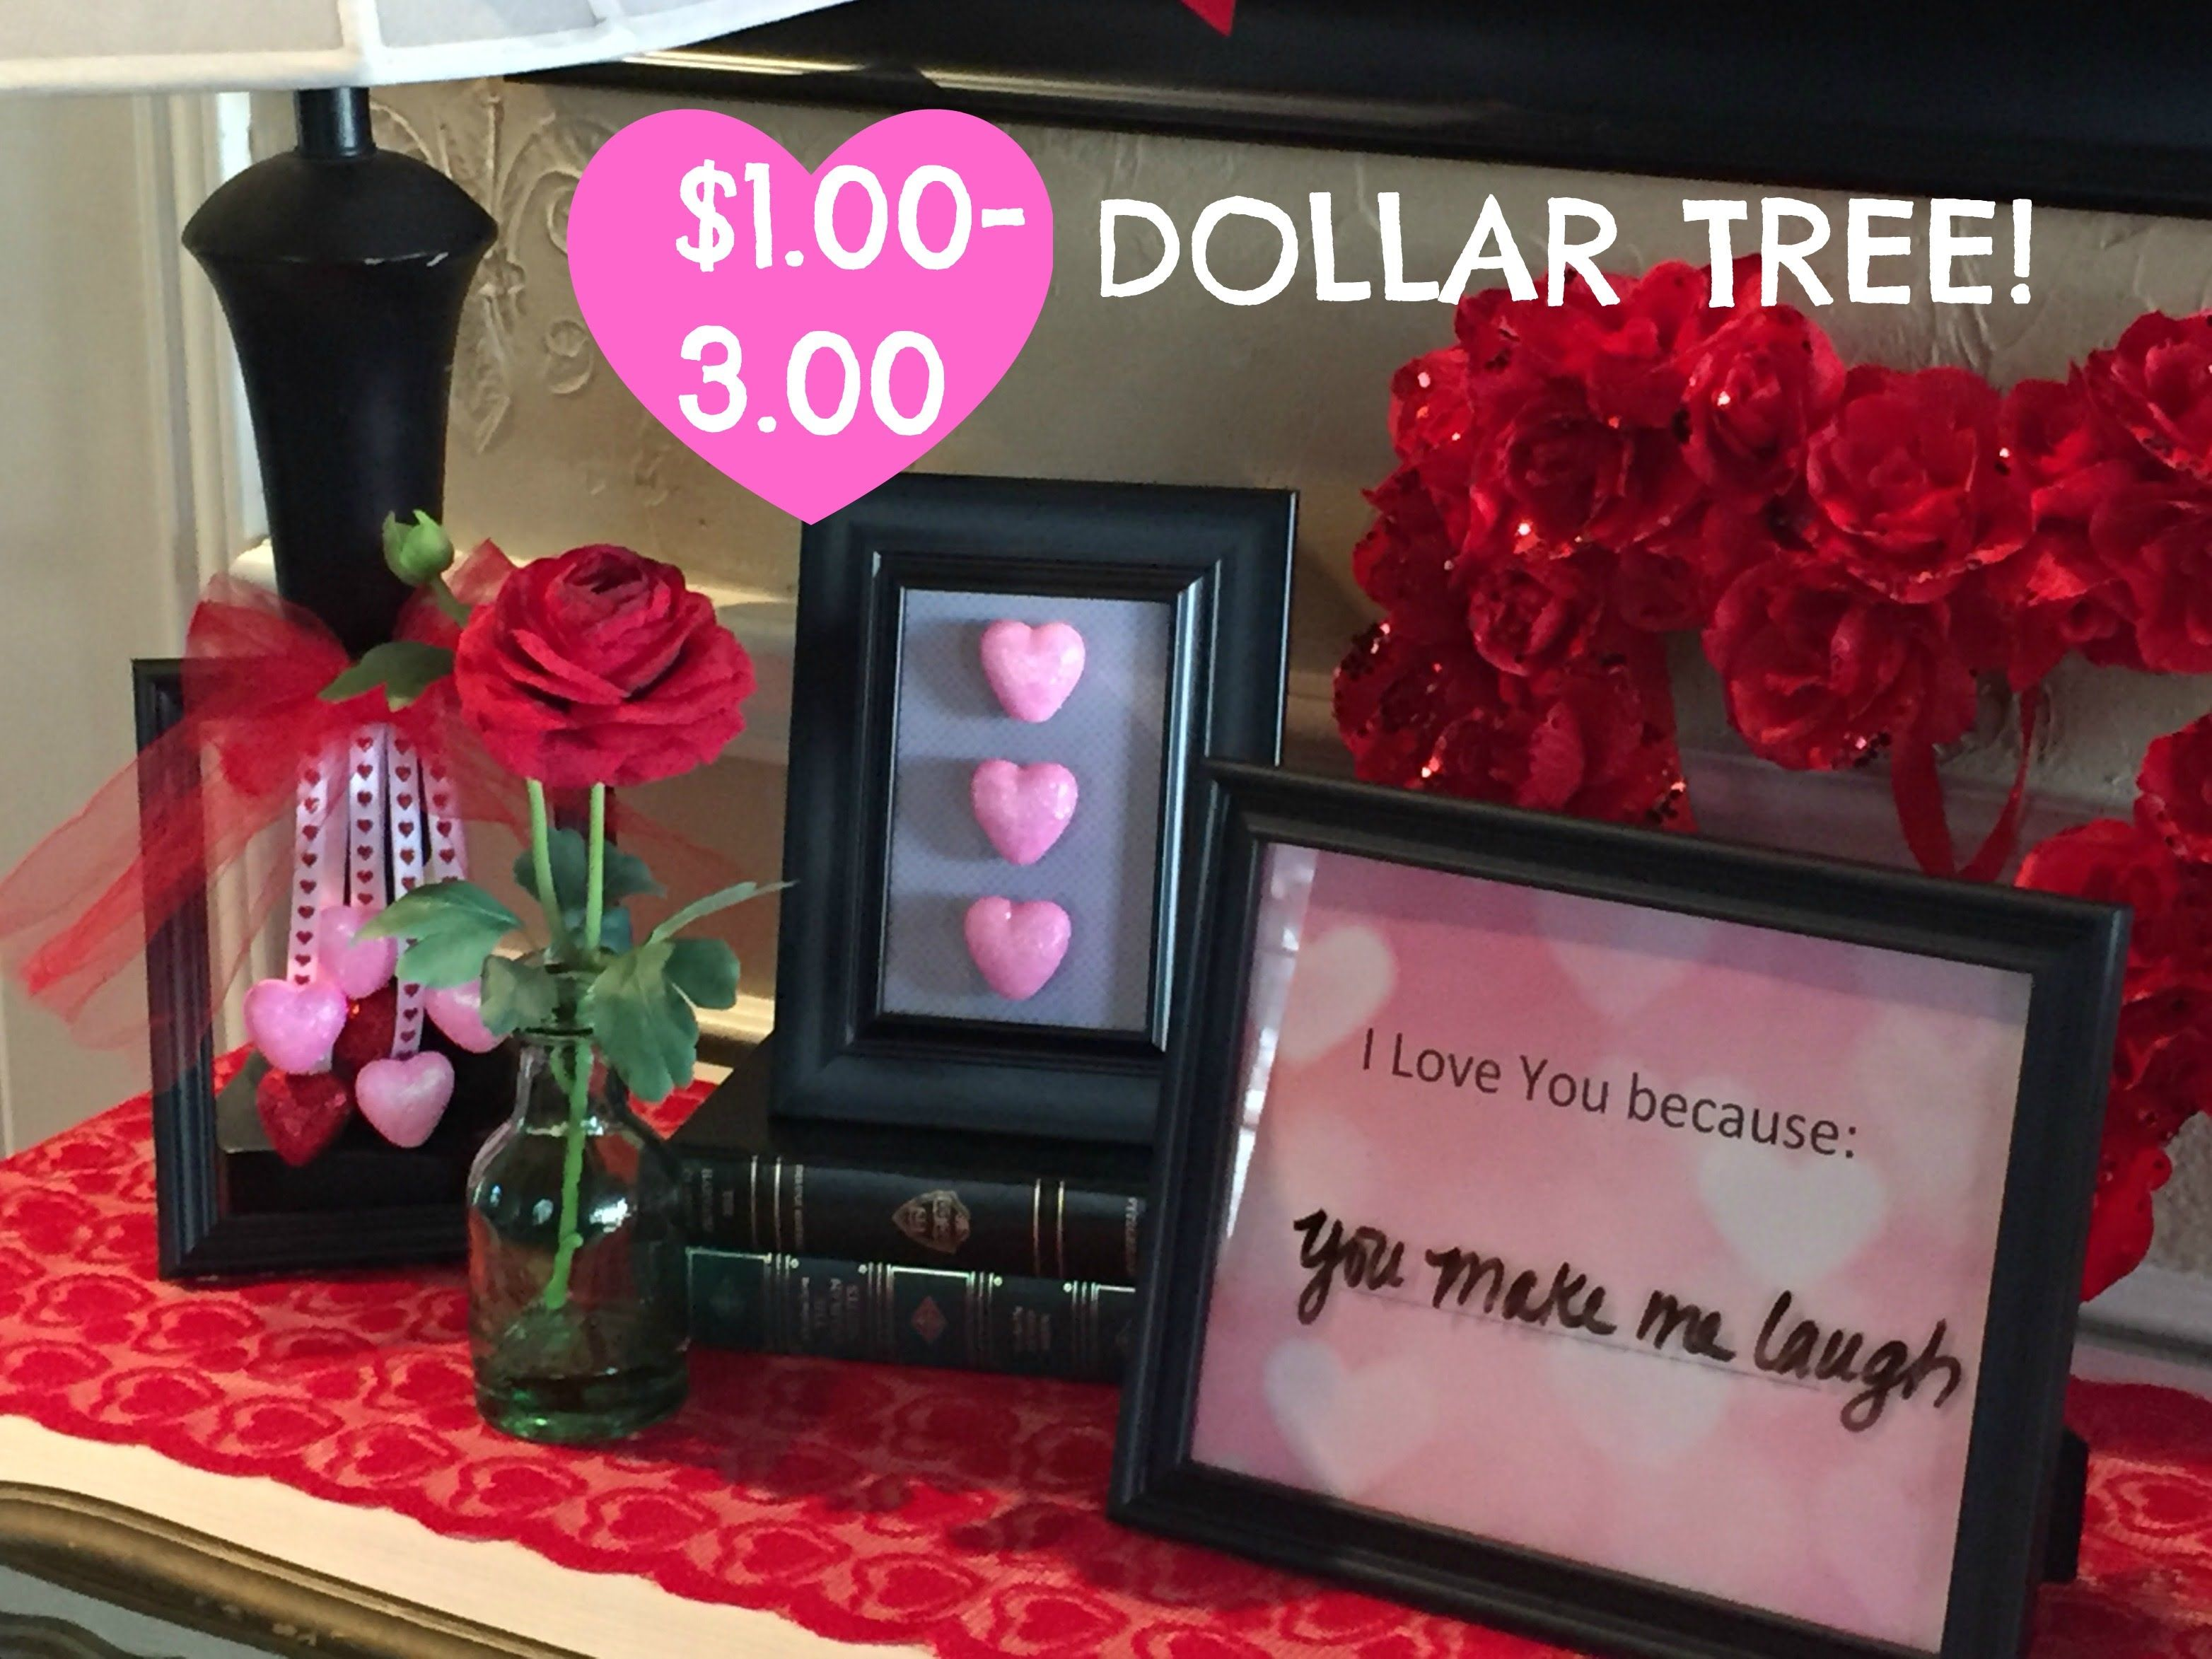 Todays video 300 dollar tree diy valentines day picture i put together this beautiful blush colored paper doily wreath for my family room supplies used paper doilies dollar tree large 16 med 14 small hot jeuxipadfo Image collections